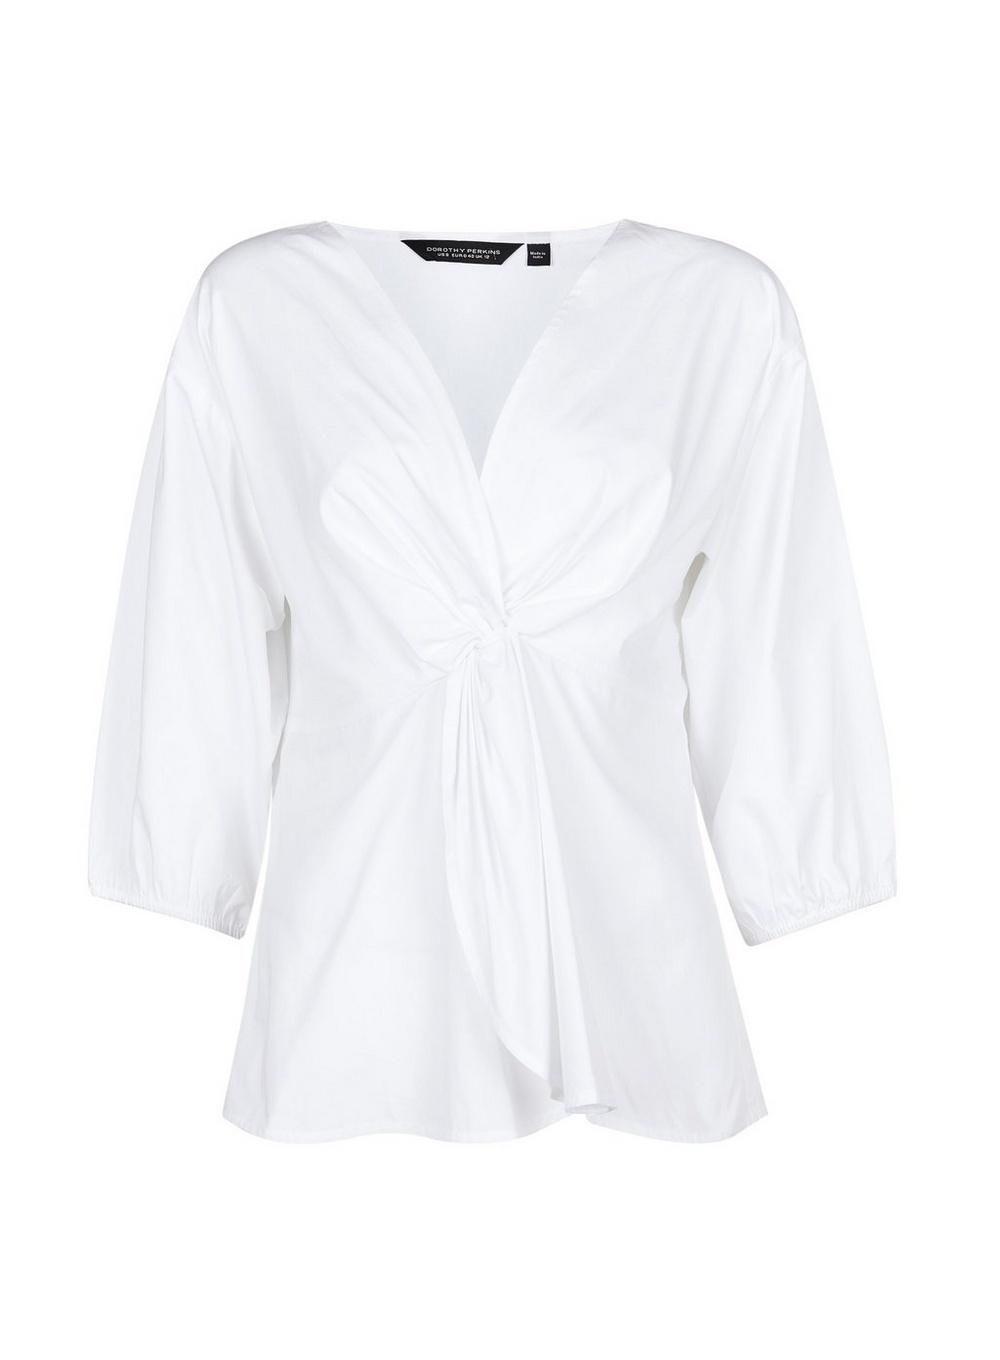 e335a3c0fbe1a0 Lyst - Dorothy Perkins White Peplum Top in White